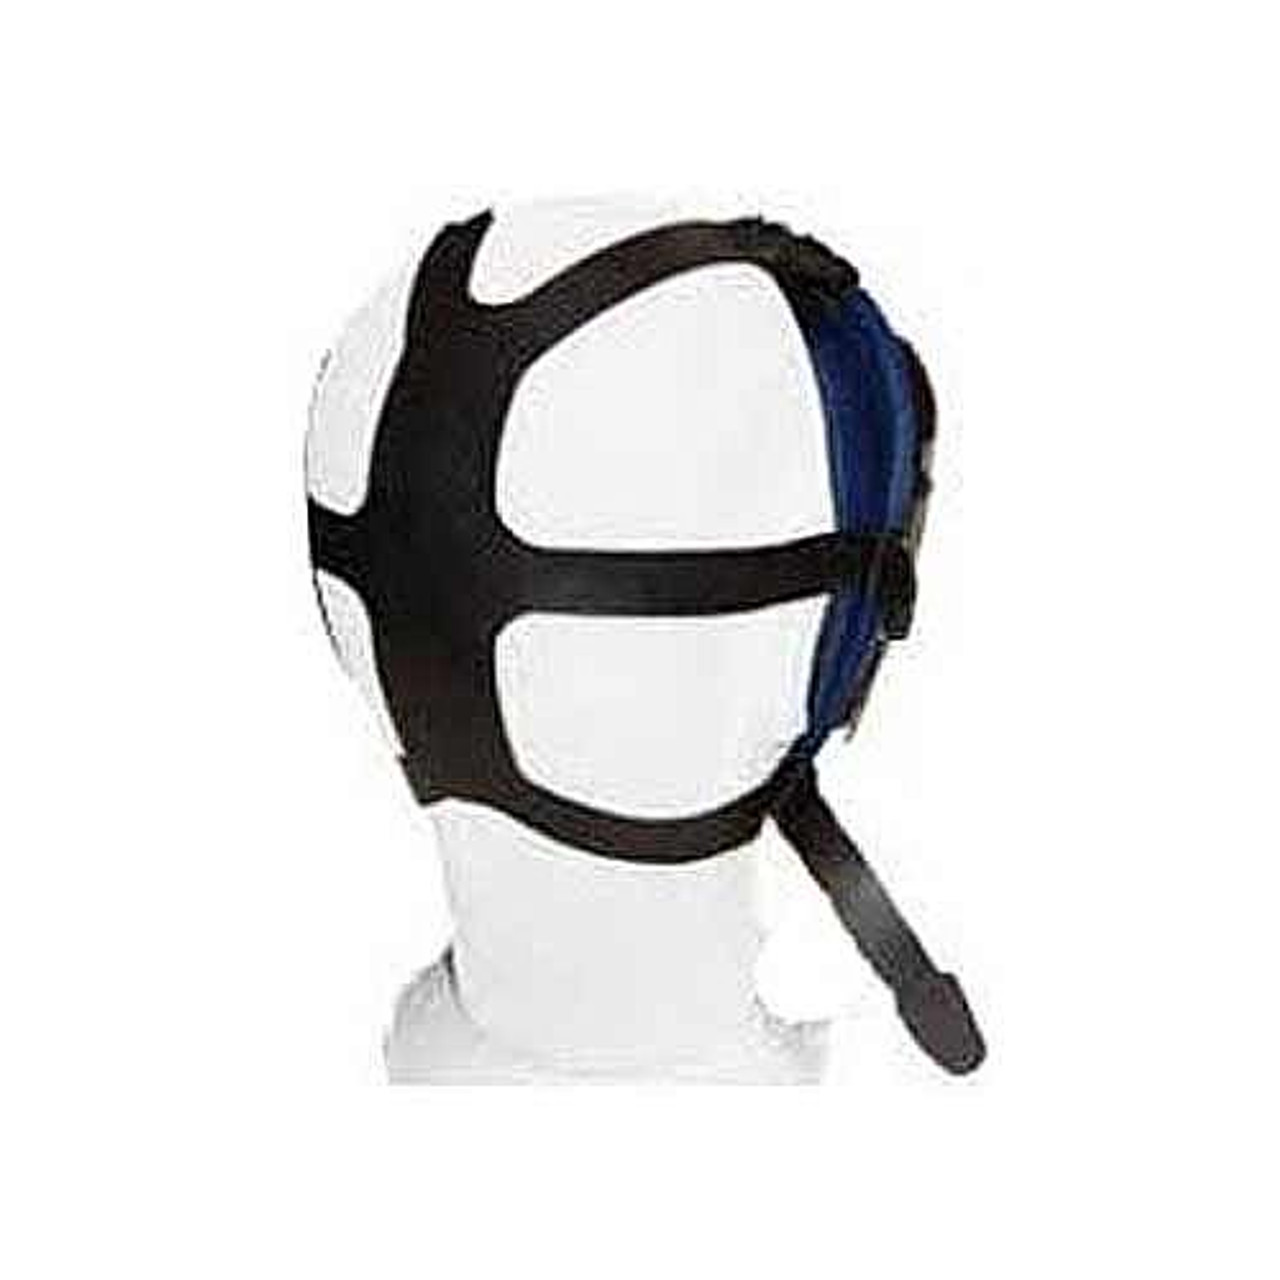 Ocean Reef Neptune Space Full Face Diving Mask Replacement Strap